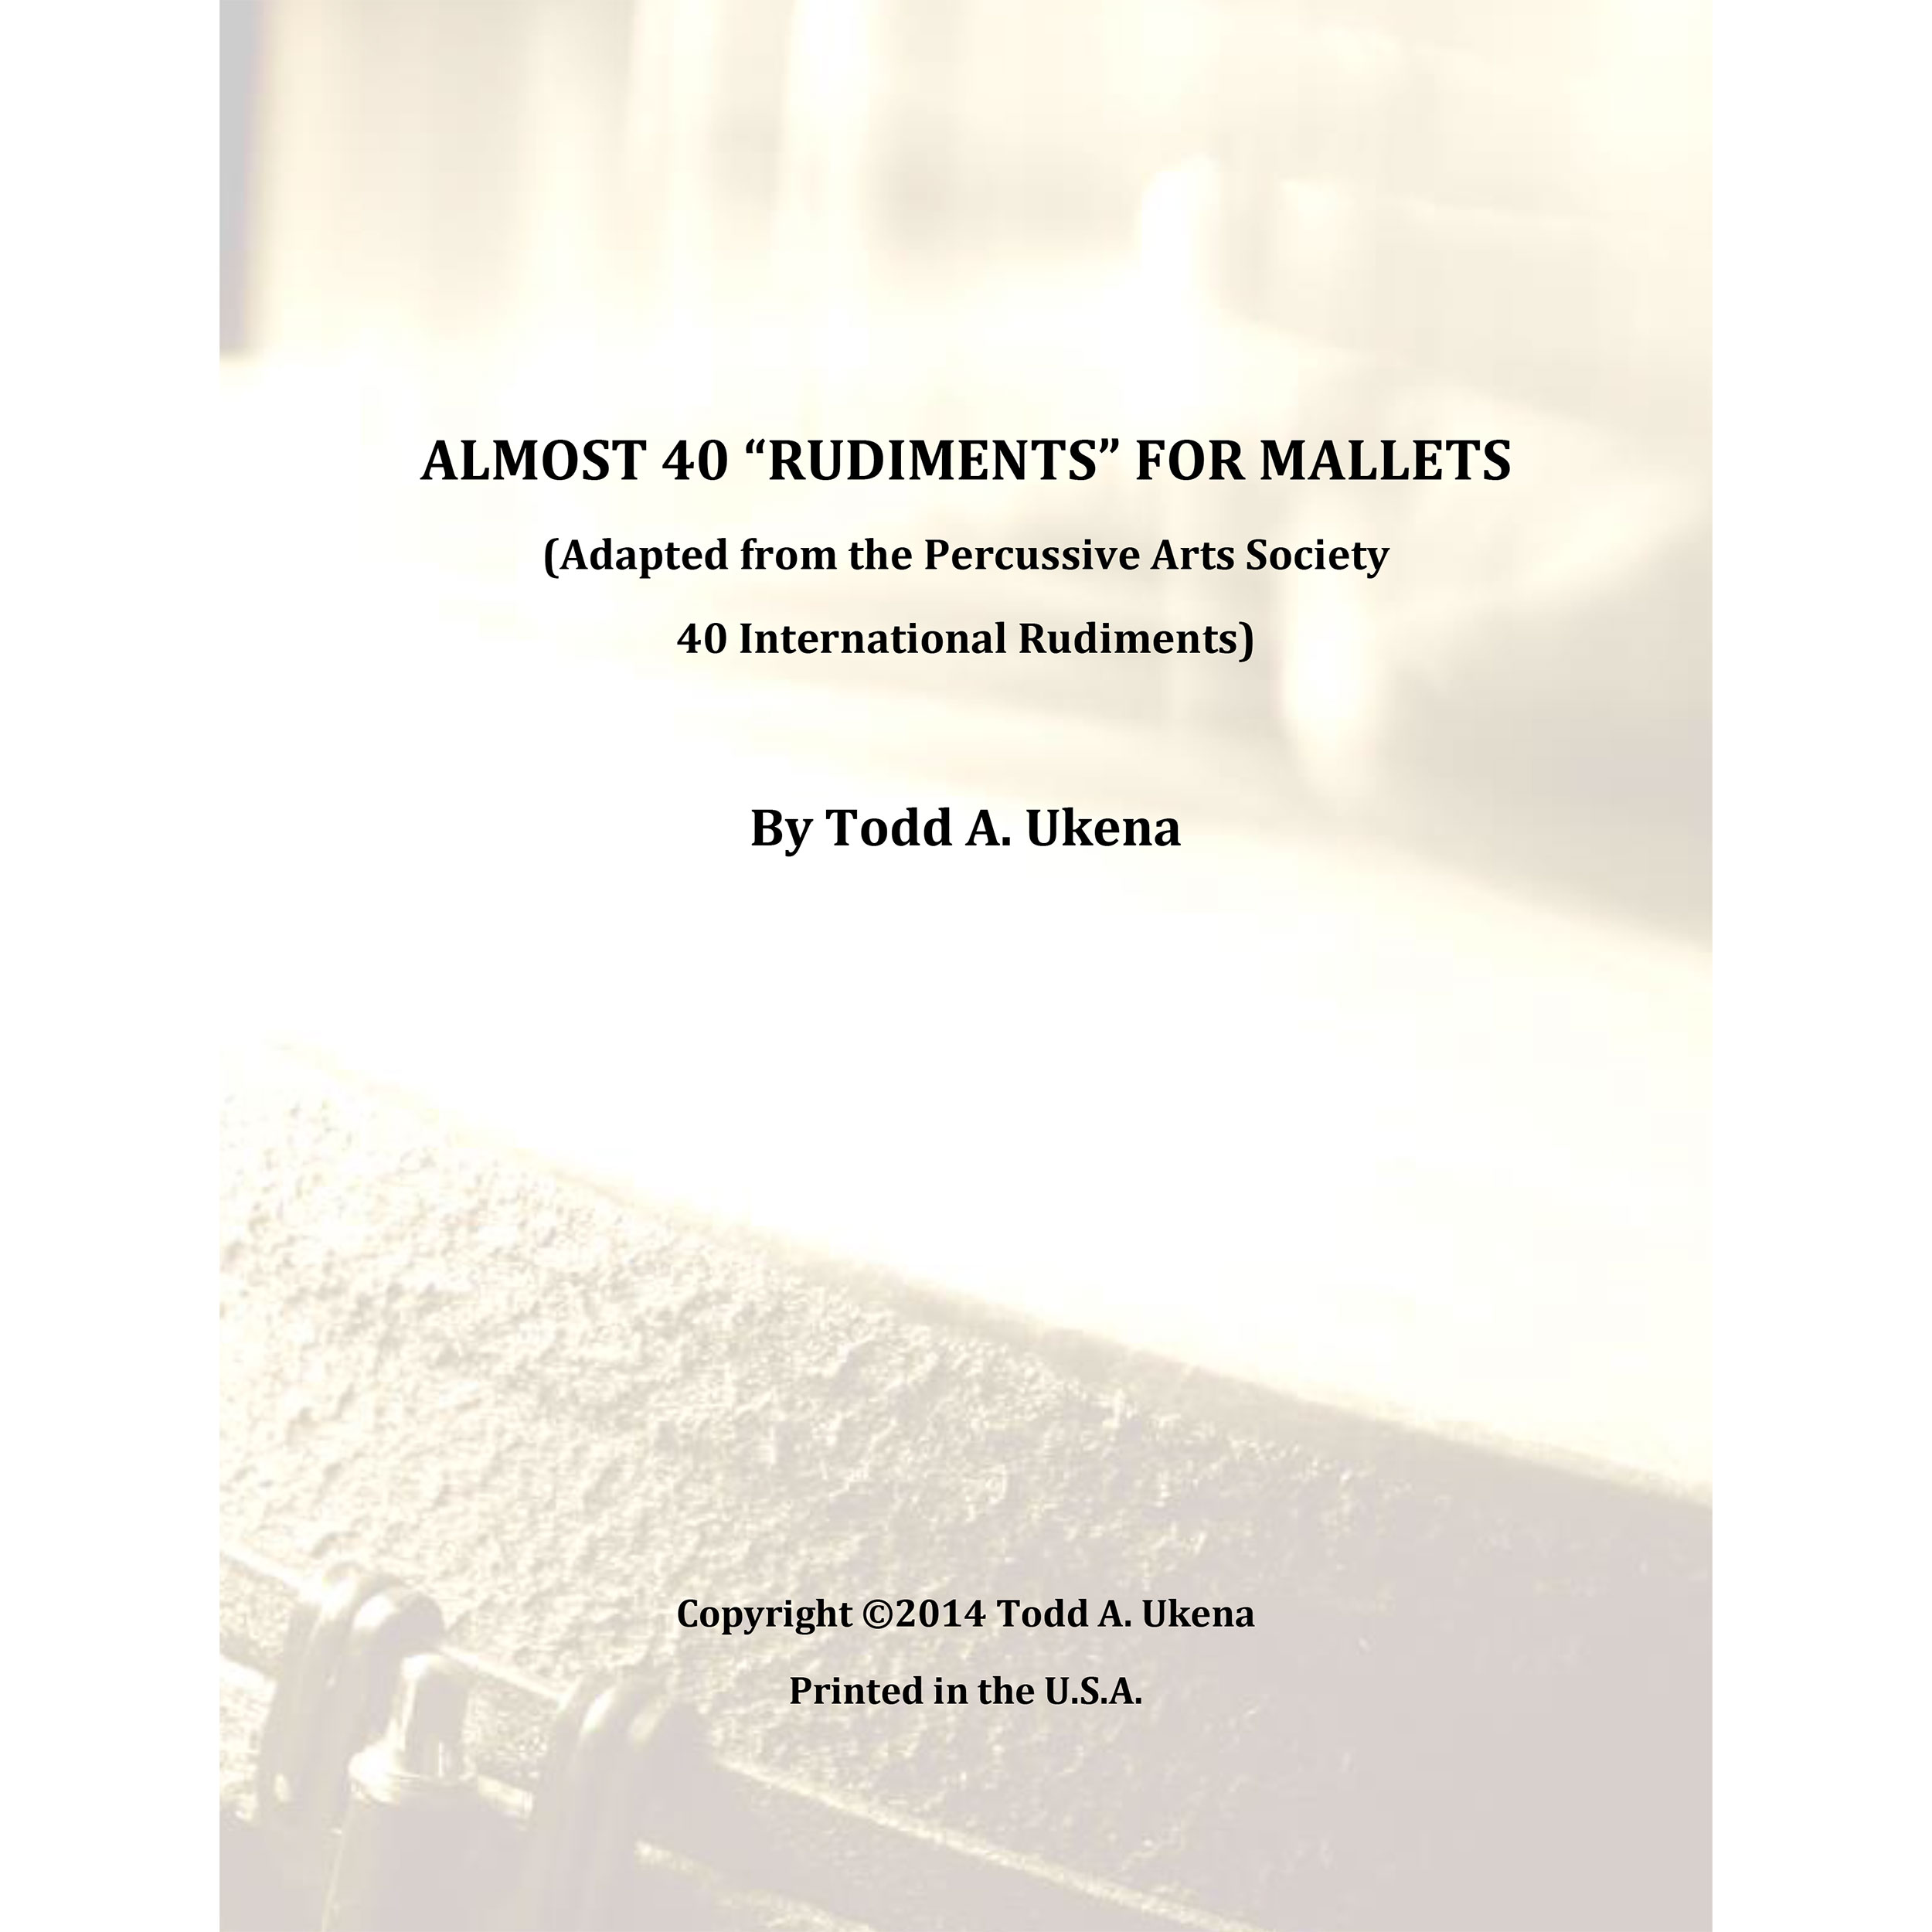 """Almost 40 """"Rudiments"""" for Mallets by Todd Ukena"""